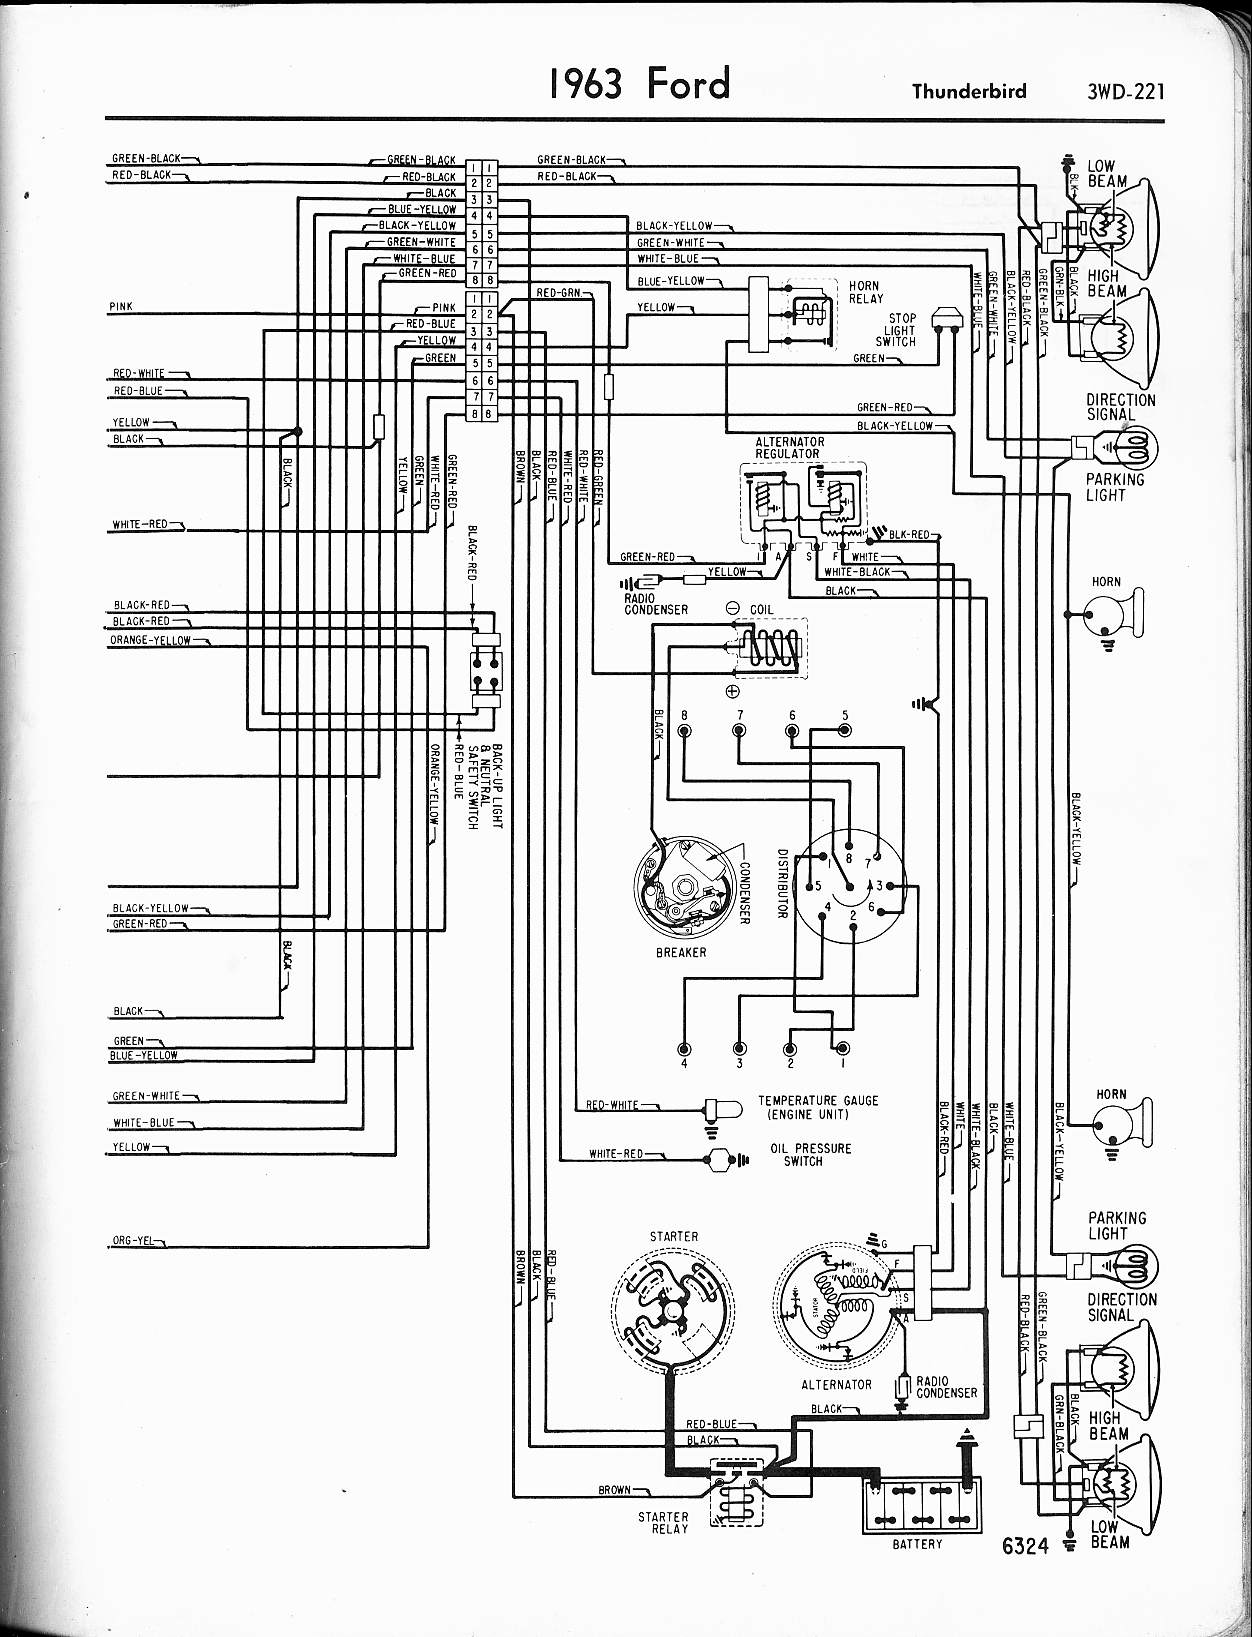 MWire5765 221 57 65 ford wiring diagrams 1970 ford wiring diagram at readyjetset.co